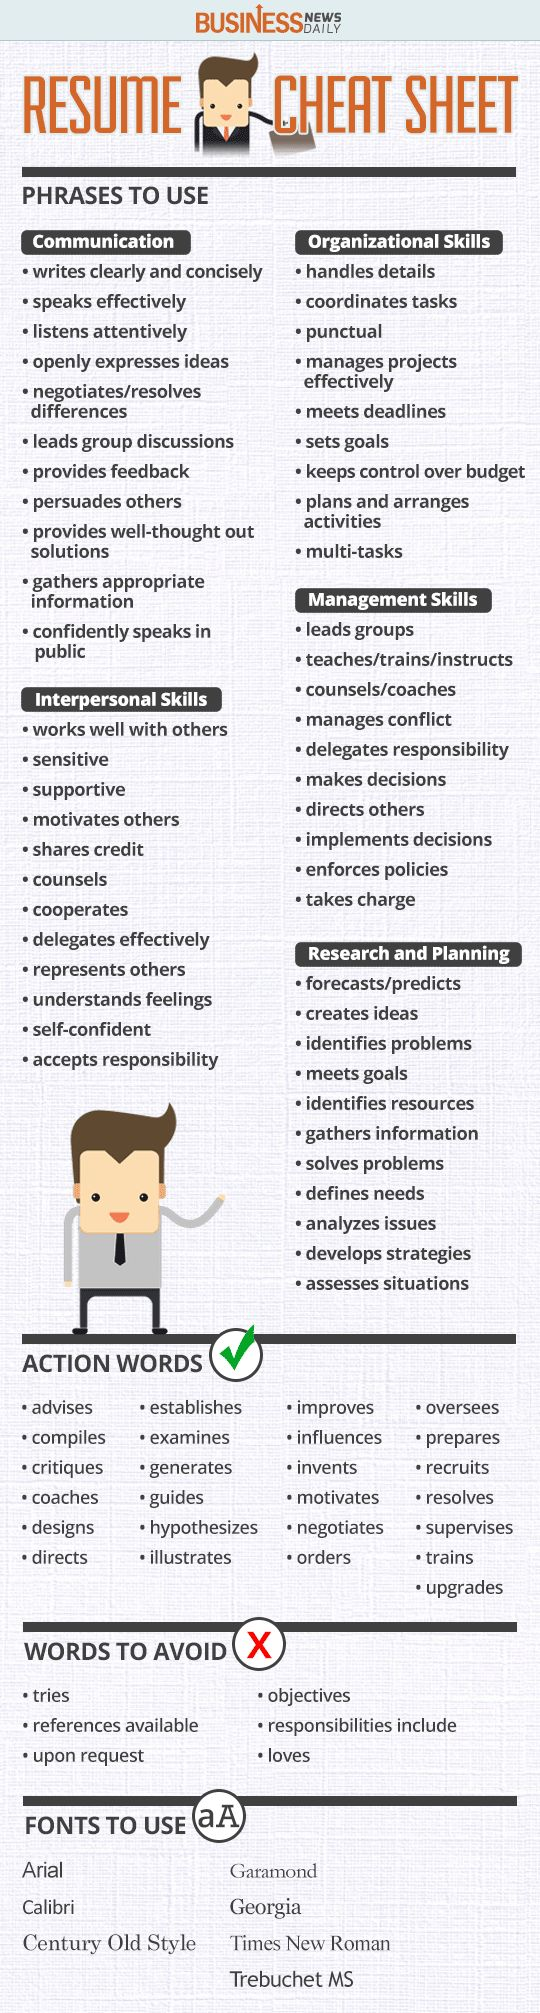 Opposenewapstandardsus  Sweet  Ideas About Resume On Pinterest  Cv Format Resume Cv And  With Licious Resume Cheat Sheet Infographic Andrews Almost Done With A Complete Unit On Employment Which With Delightful Linkedin Profile To Resume Also Resume Descriptions In Addition Financial Services Resume And Resume Packet As Well As See Resume Additionally Industrial Electrician Resume From Pinterestcom With Opposenewapstandardsus  Licious  Ideas About Resume On Pinterest  Cv Format Resume Cv And  With Delightful Resume Cheat Sheet Infographic Andrews Almost Done With A Complete Unit On Employment Which And Sweet Linkedin Profile To Resume Also Resume Descriptions In Addition Financial Services Resume From Pinterestcom